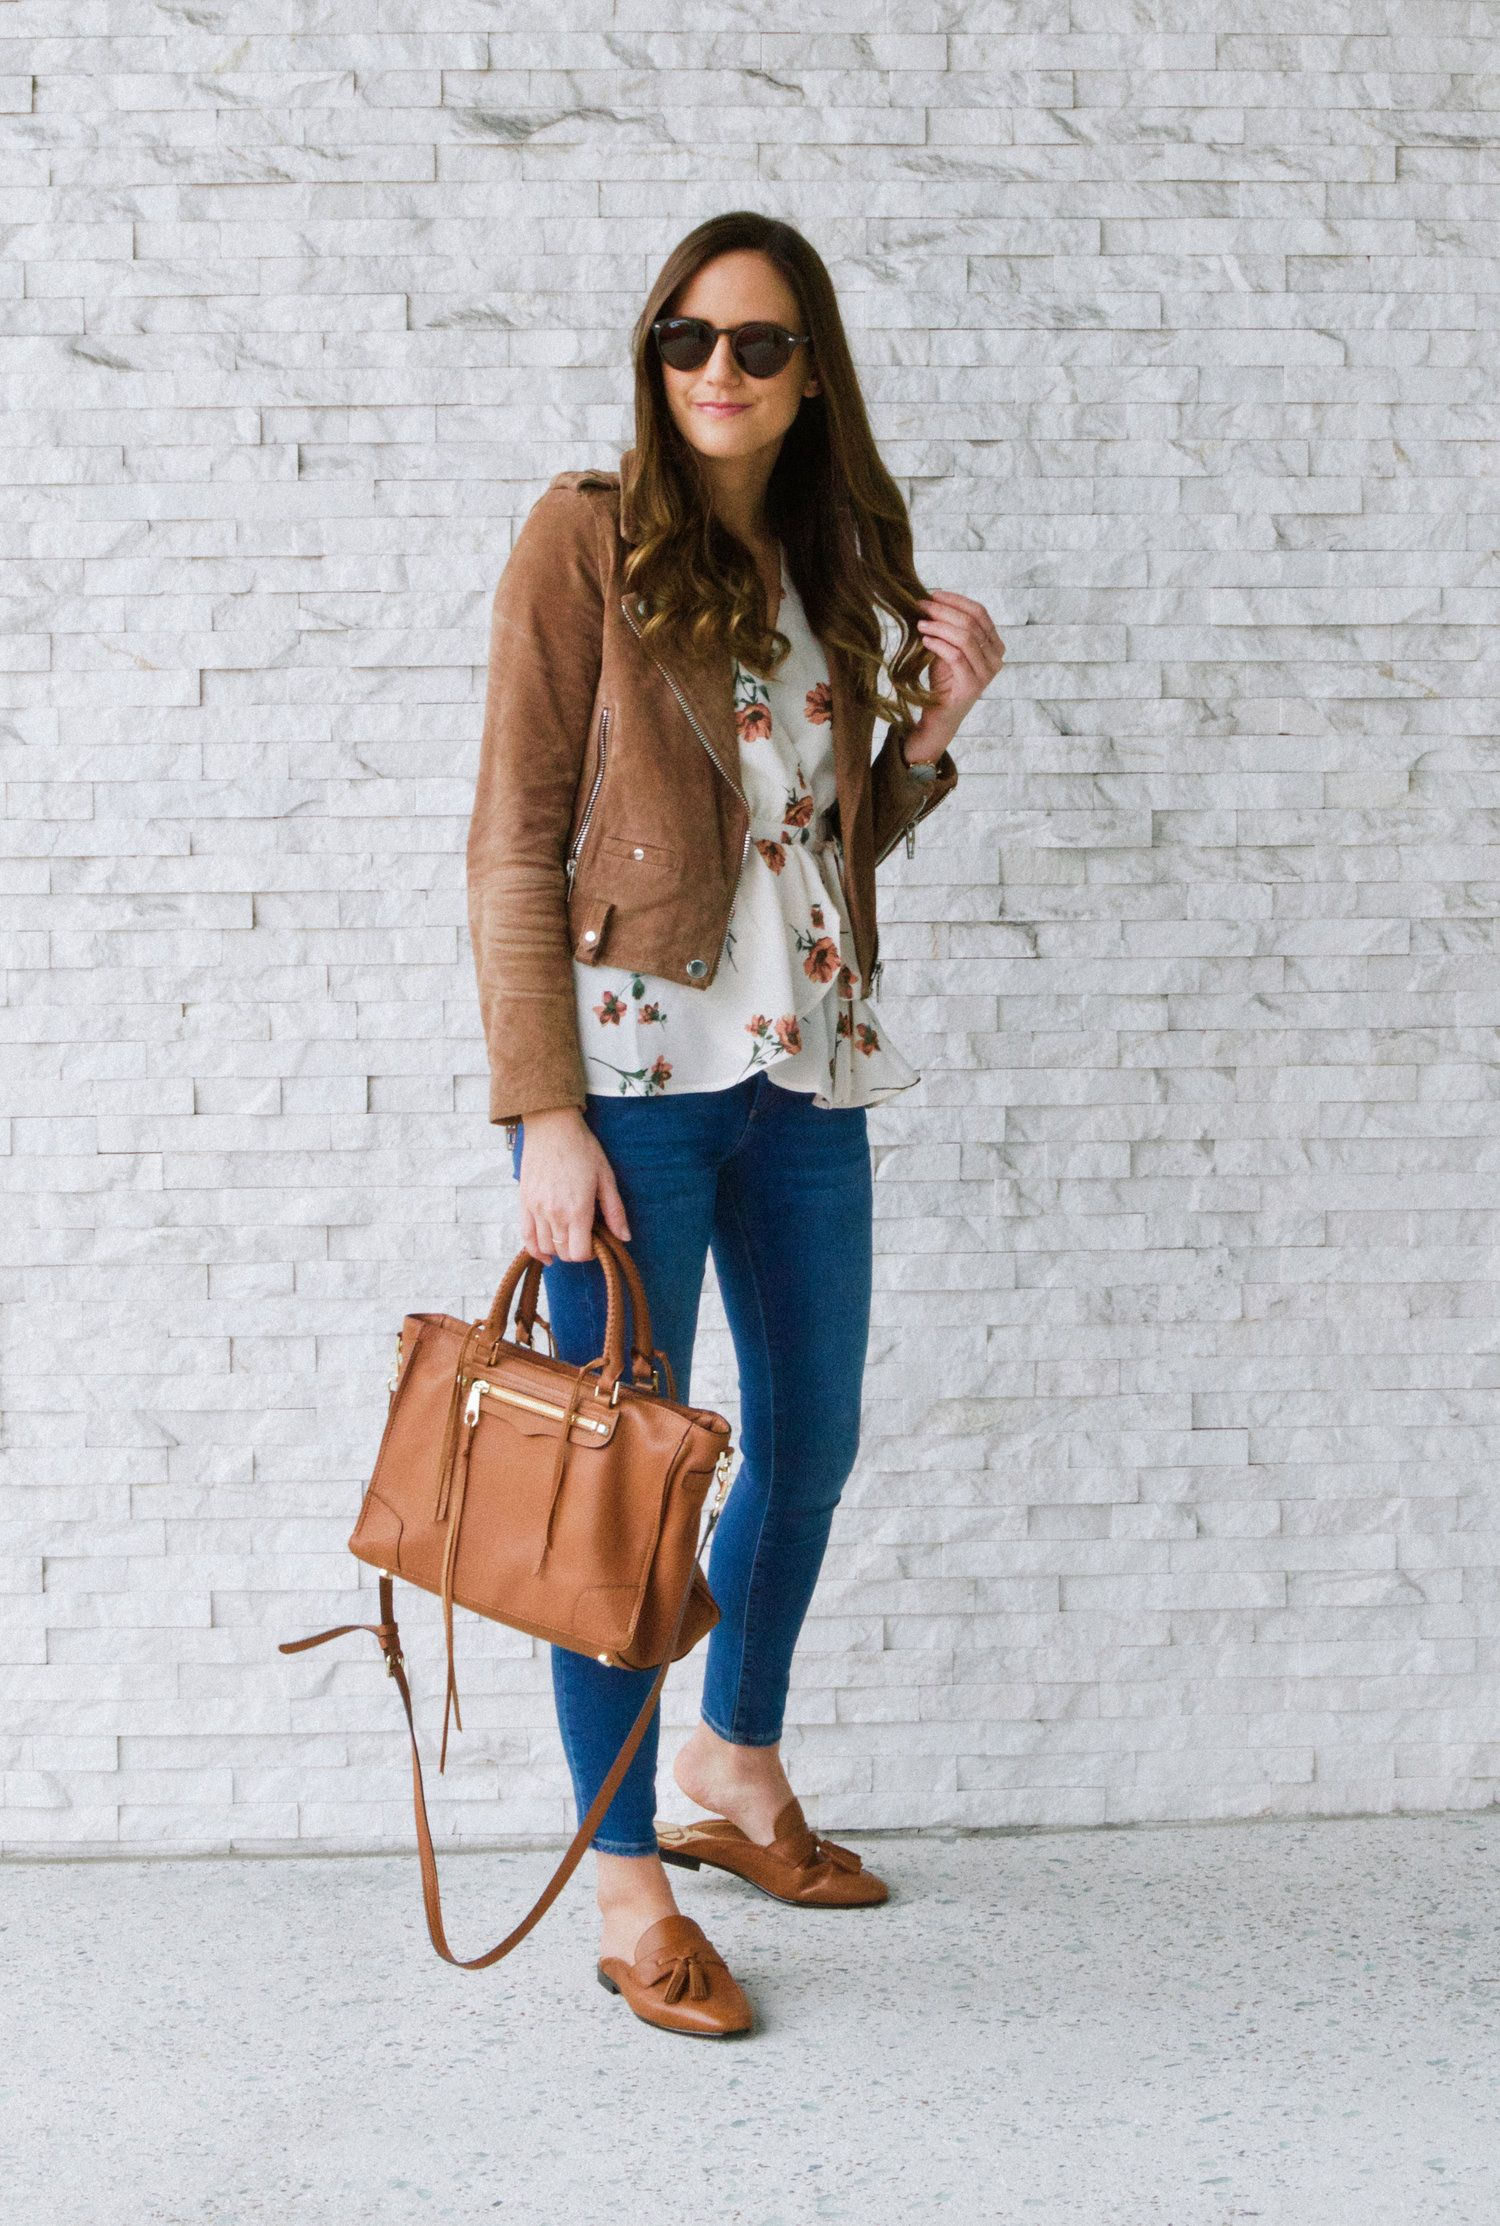 Cognac Loafers and Floral Wrap Top Leather jacket outfit